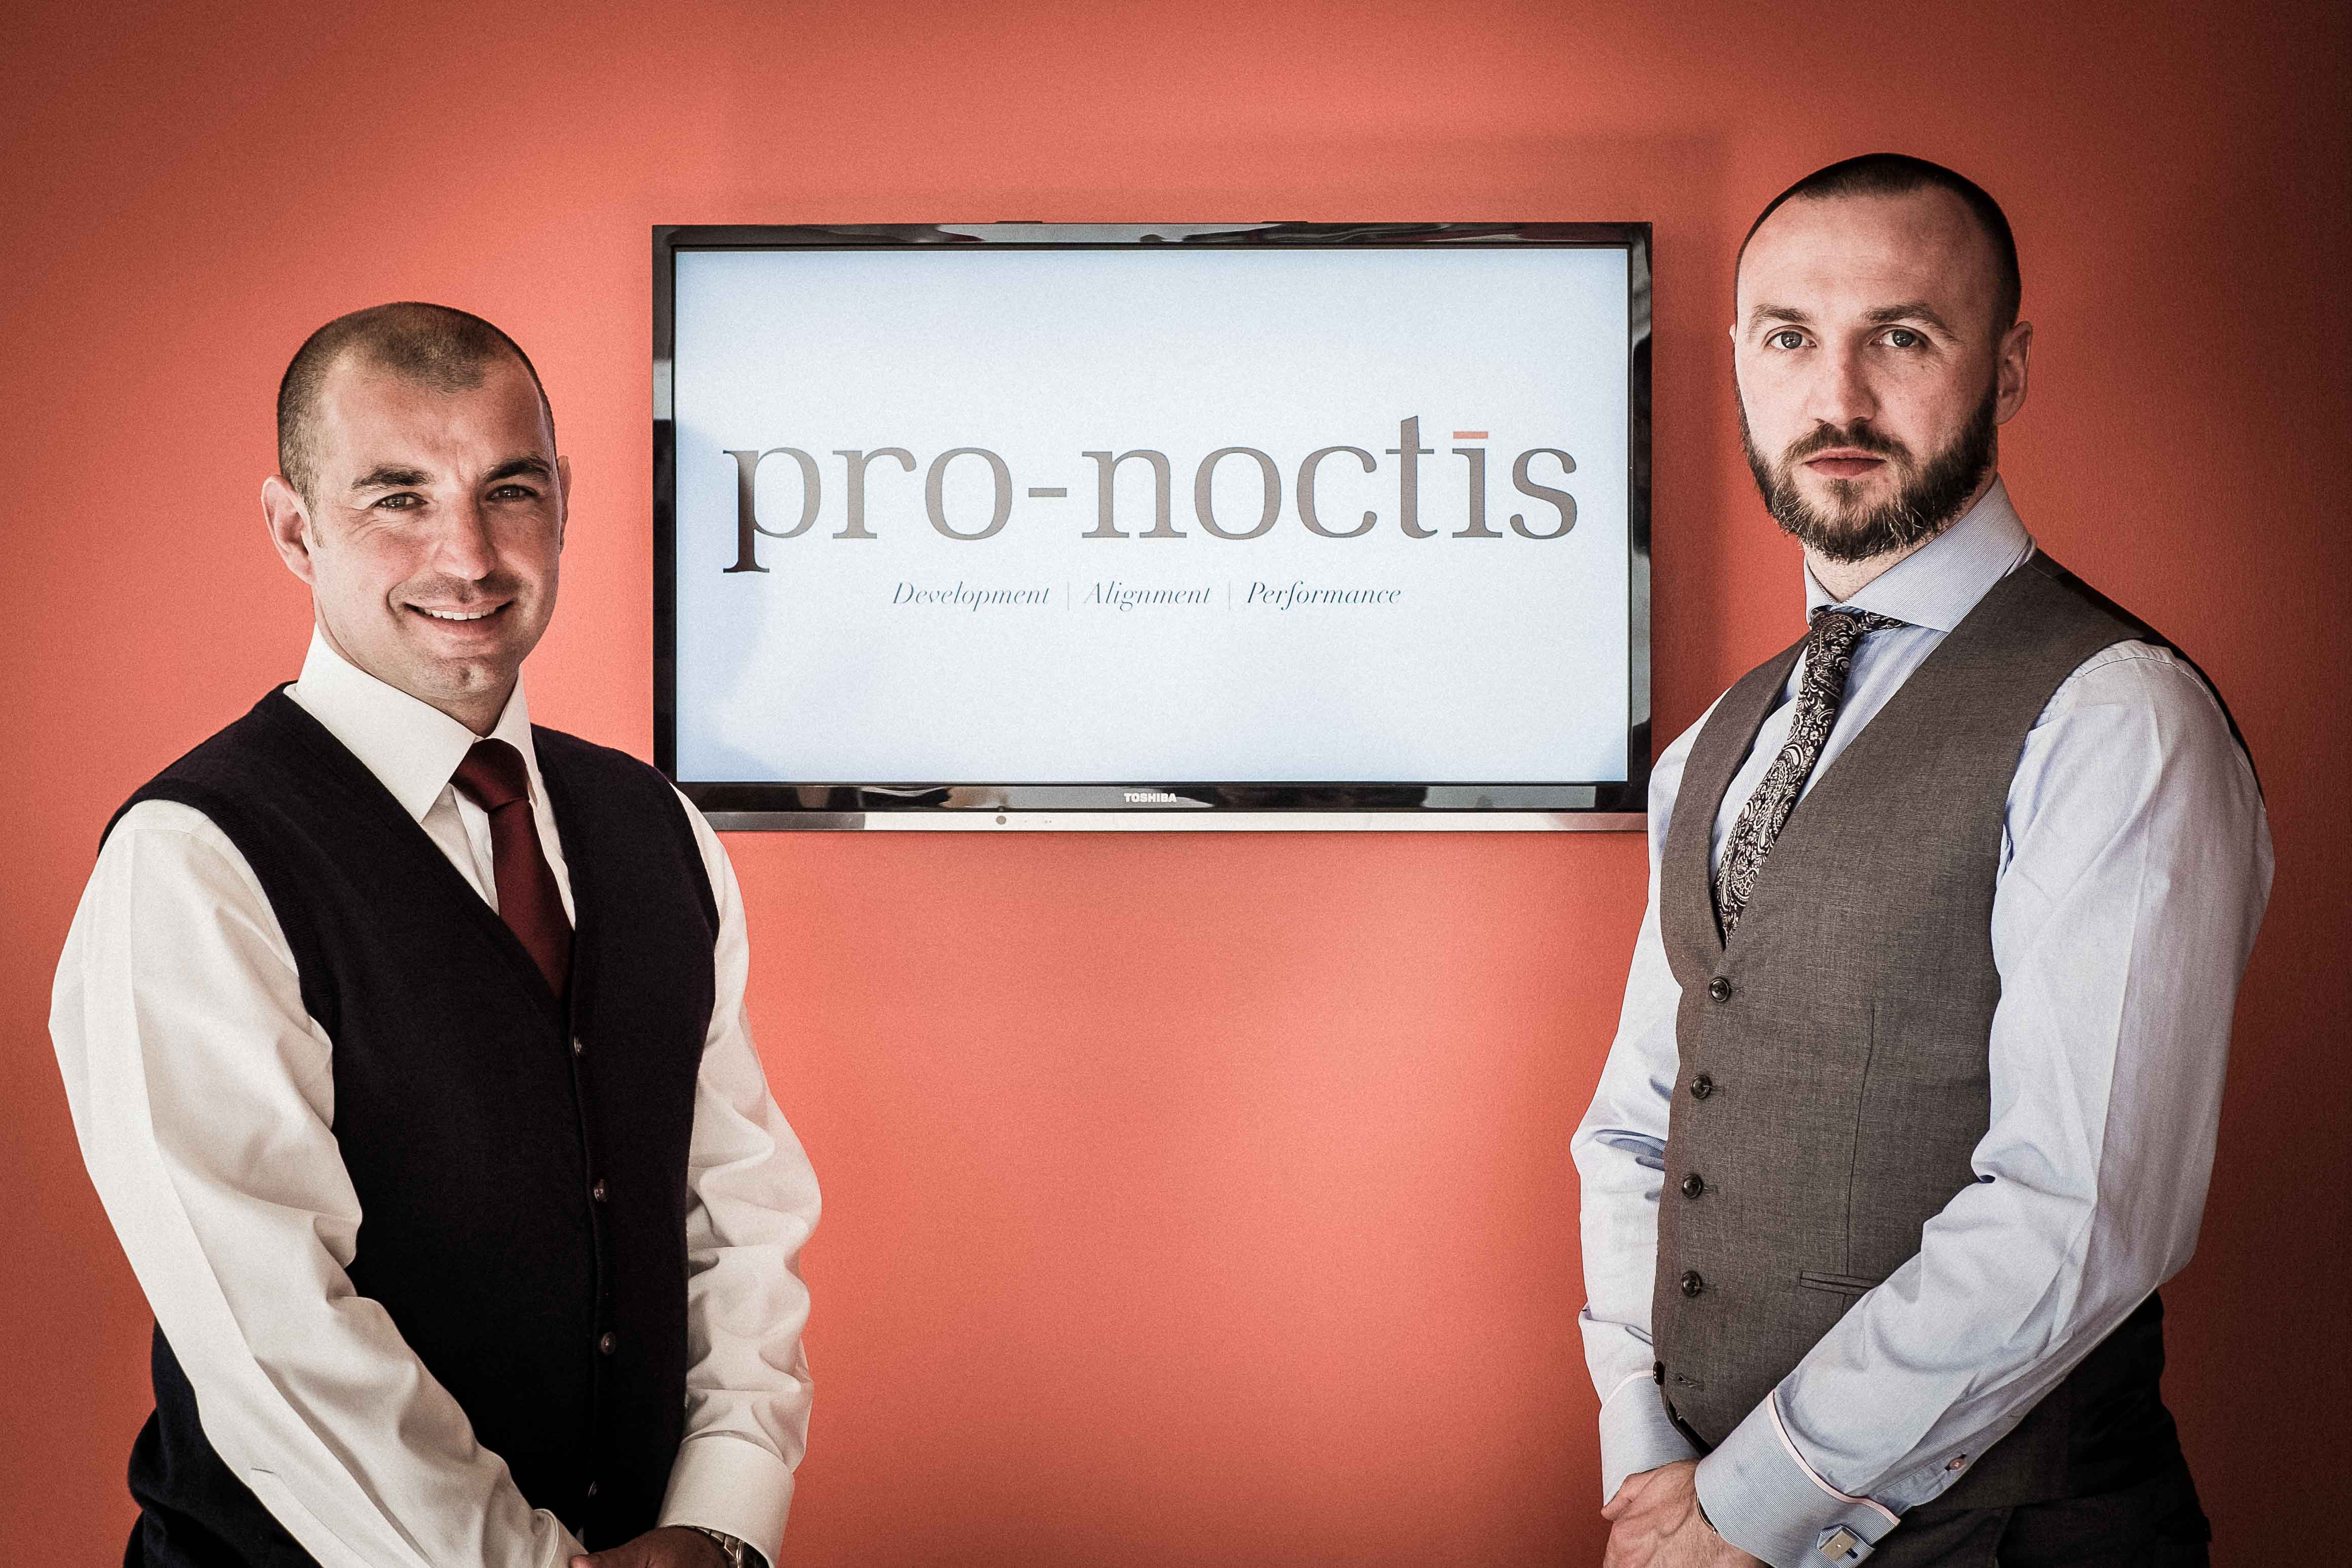 Pro-noctis-directors-phil-quirk-phil-kelly-001